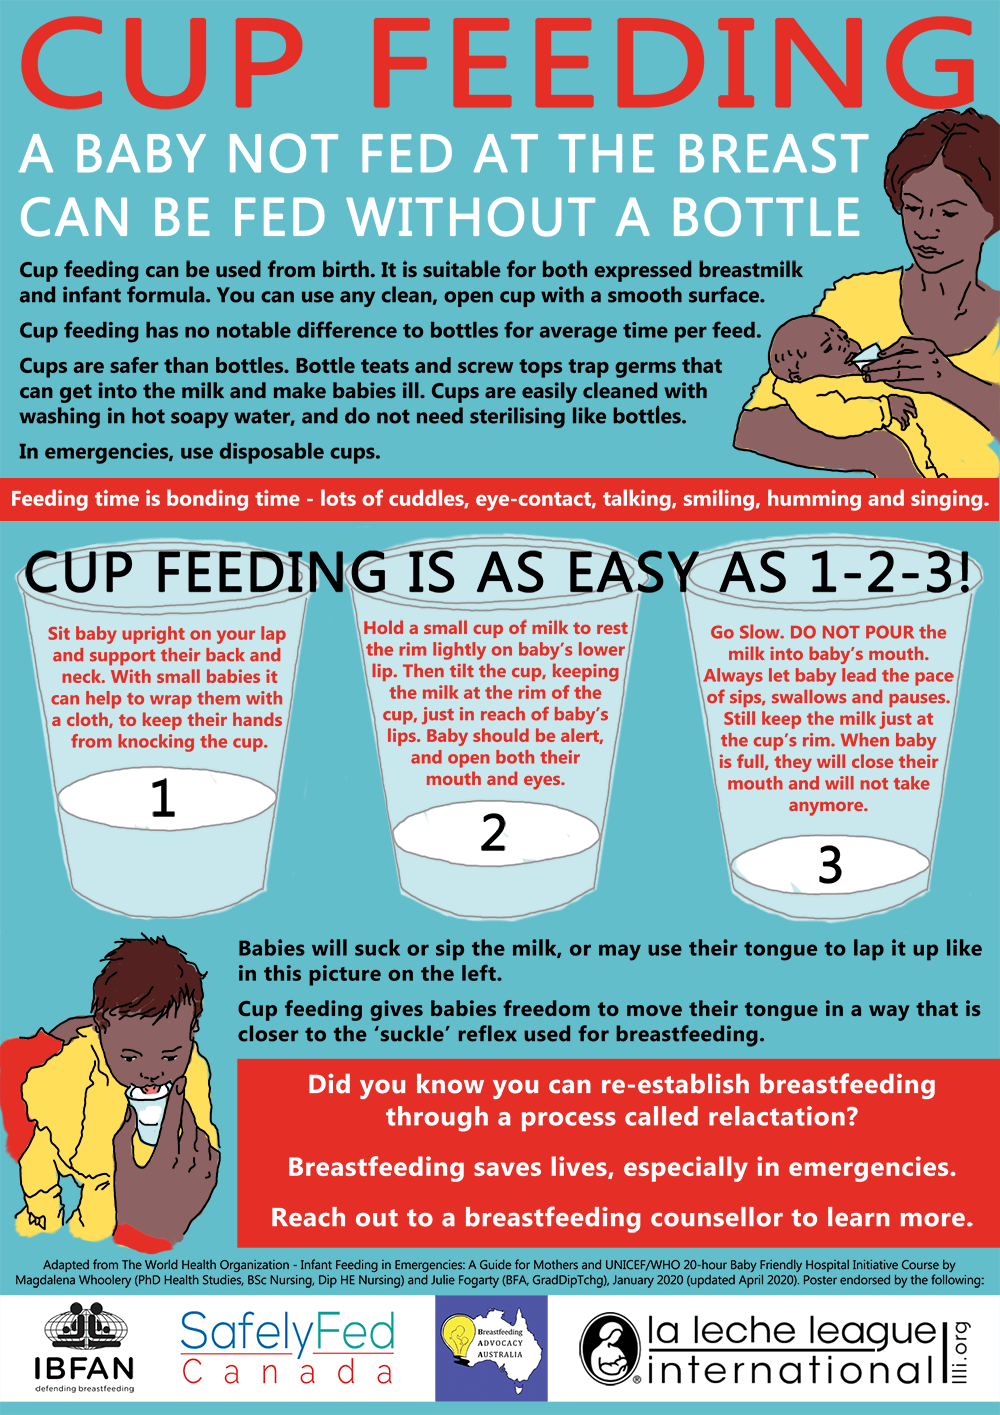 Cup feeding: a baby not fed at the breast can be fed without a bottle.  Cup feeding can be used from birth. It is suitable for both expressed breastmilk and infant formula. You can use any clean, open cup with a smooth surface.  Babies will suck or sip the milk, or may use their tongue to lap it up.  Cup feeding gives babies freedom to move their tongue in a way that is closer to the 'suckle' reflex used for breastfeeding.  Poster created by and used with the permission of Breastfeeding Advocacy Australia,